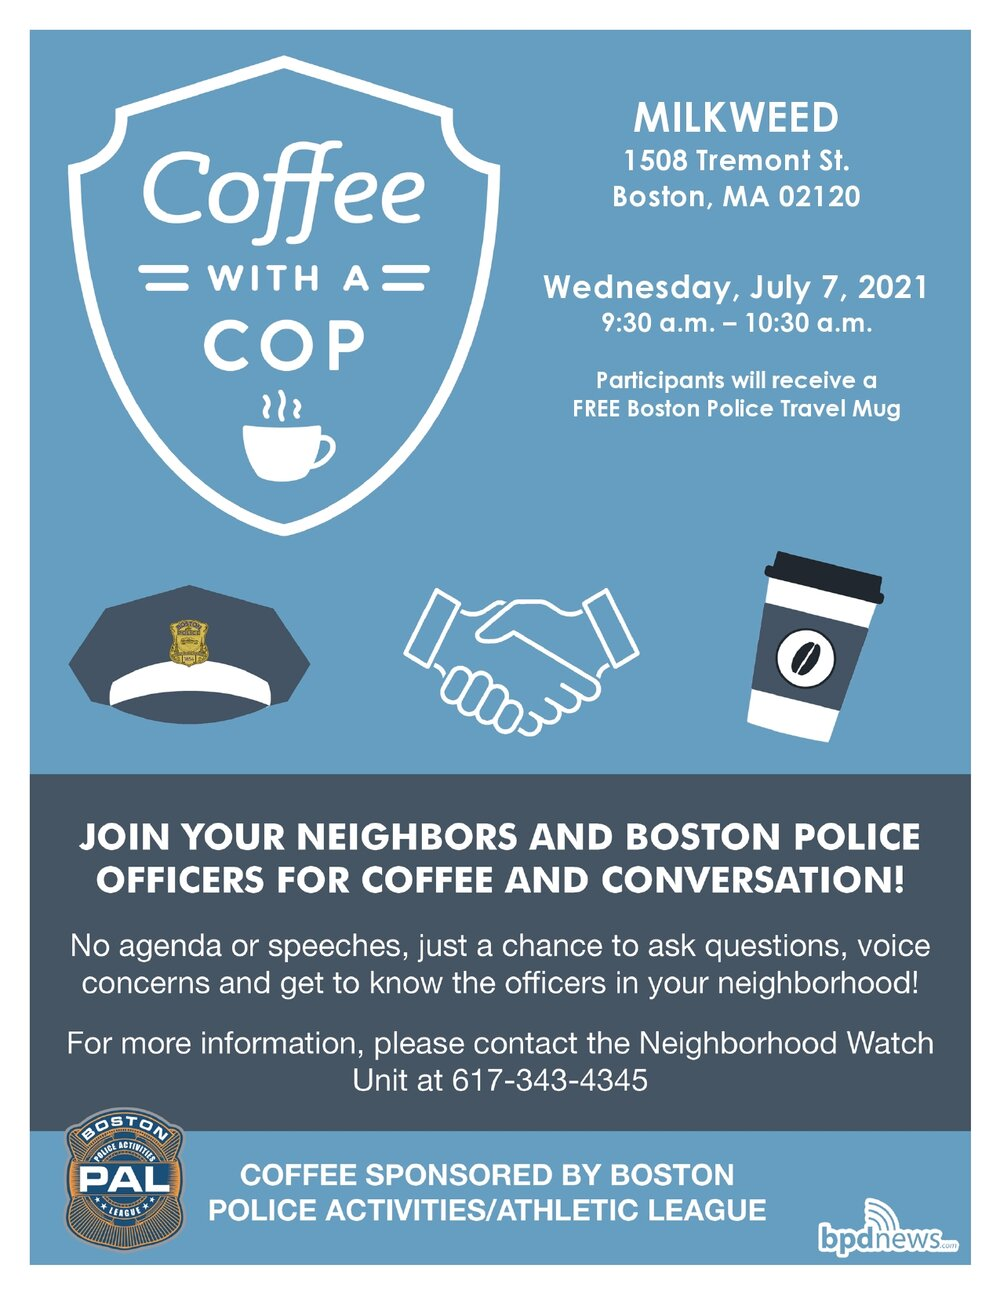 Coffee with a Cop is Back: Please Join us as we stop by Milkweed at 1508 Tremont Street in Mission Hill